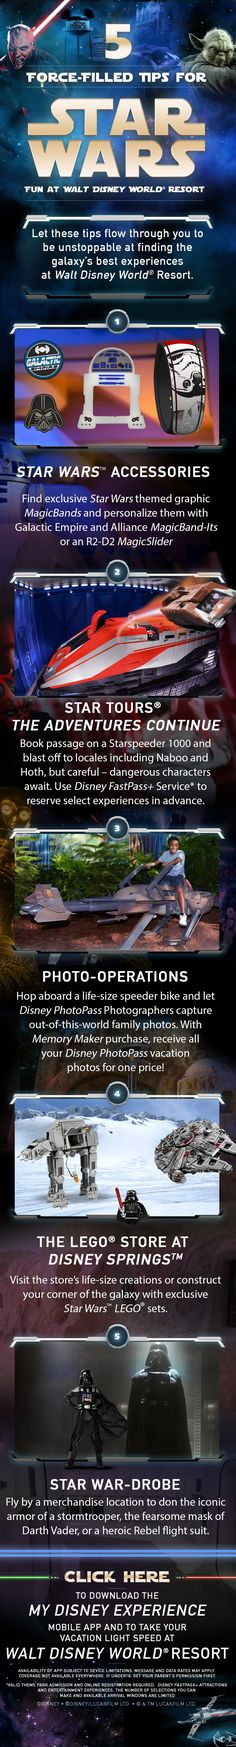 Check out these 5 Force-filled tips for having the ultimate Star Wars experience on your Walt Disney World vacation. From riding Star Tours to showing love for the galaxy with MagicBands, there's something for every Star Wars fan in your family!